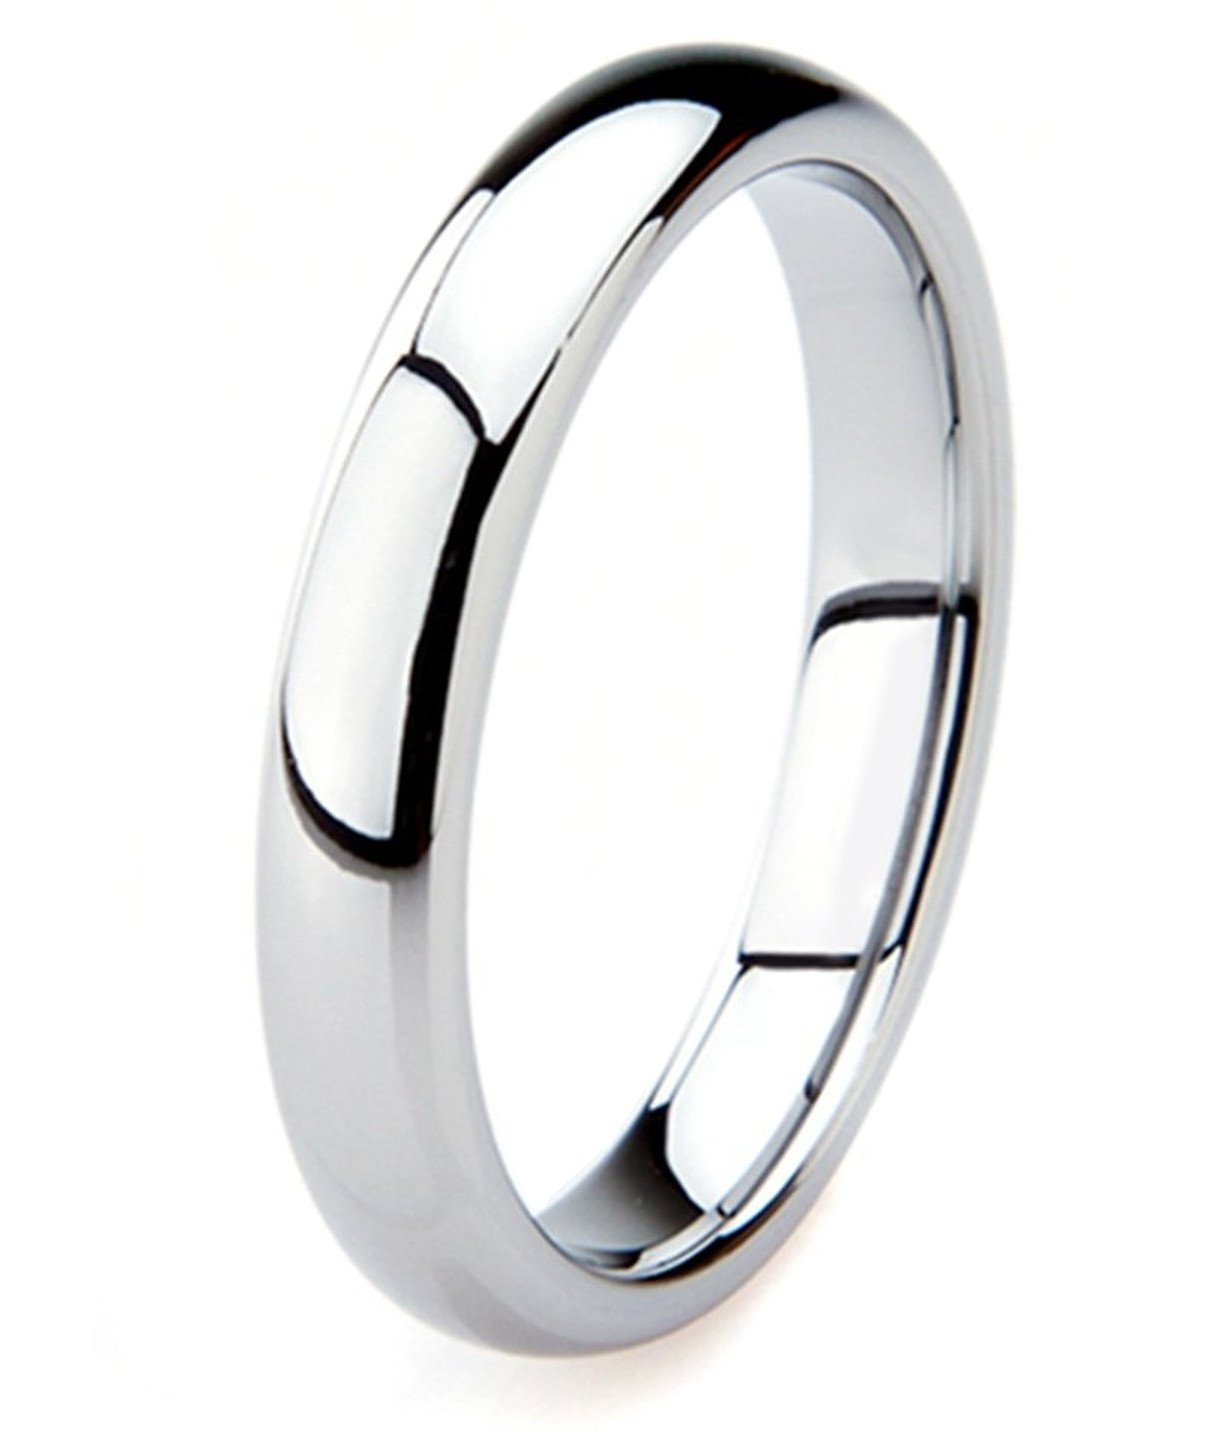 King Will BASIC 4mm Classic Polished Comfort Fit Domed Tungsten Metal Ring Wedding Band(11)